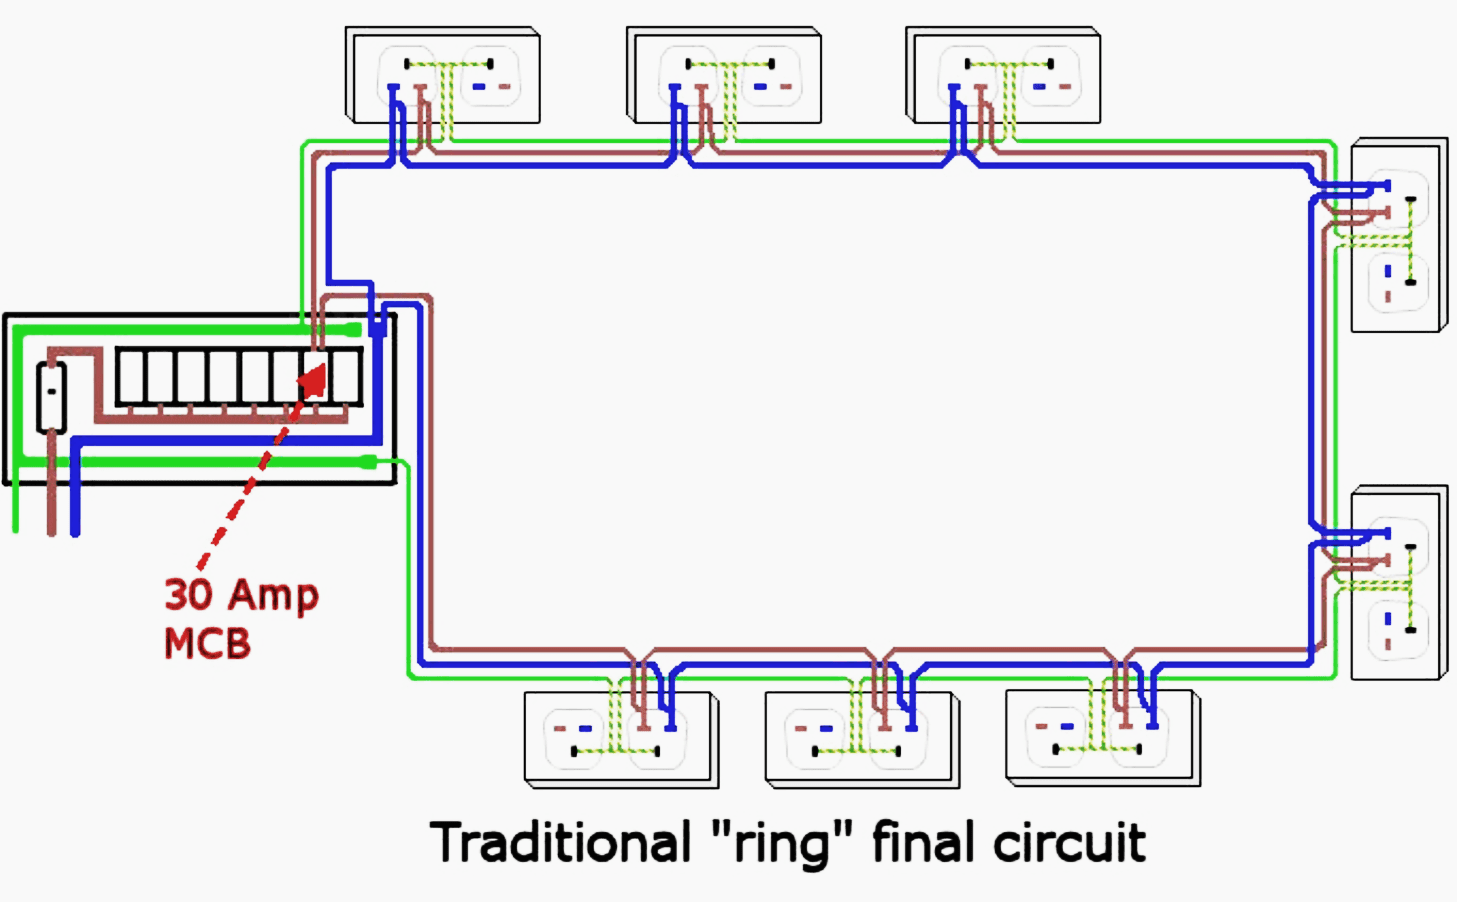 hight resolution of kitchen ring wiring diagram wiring diagram view kitchen ring wiring diagram wiring diagram database how to